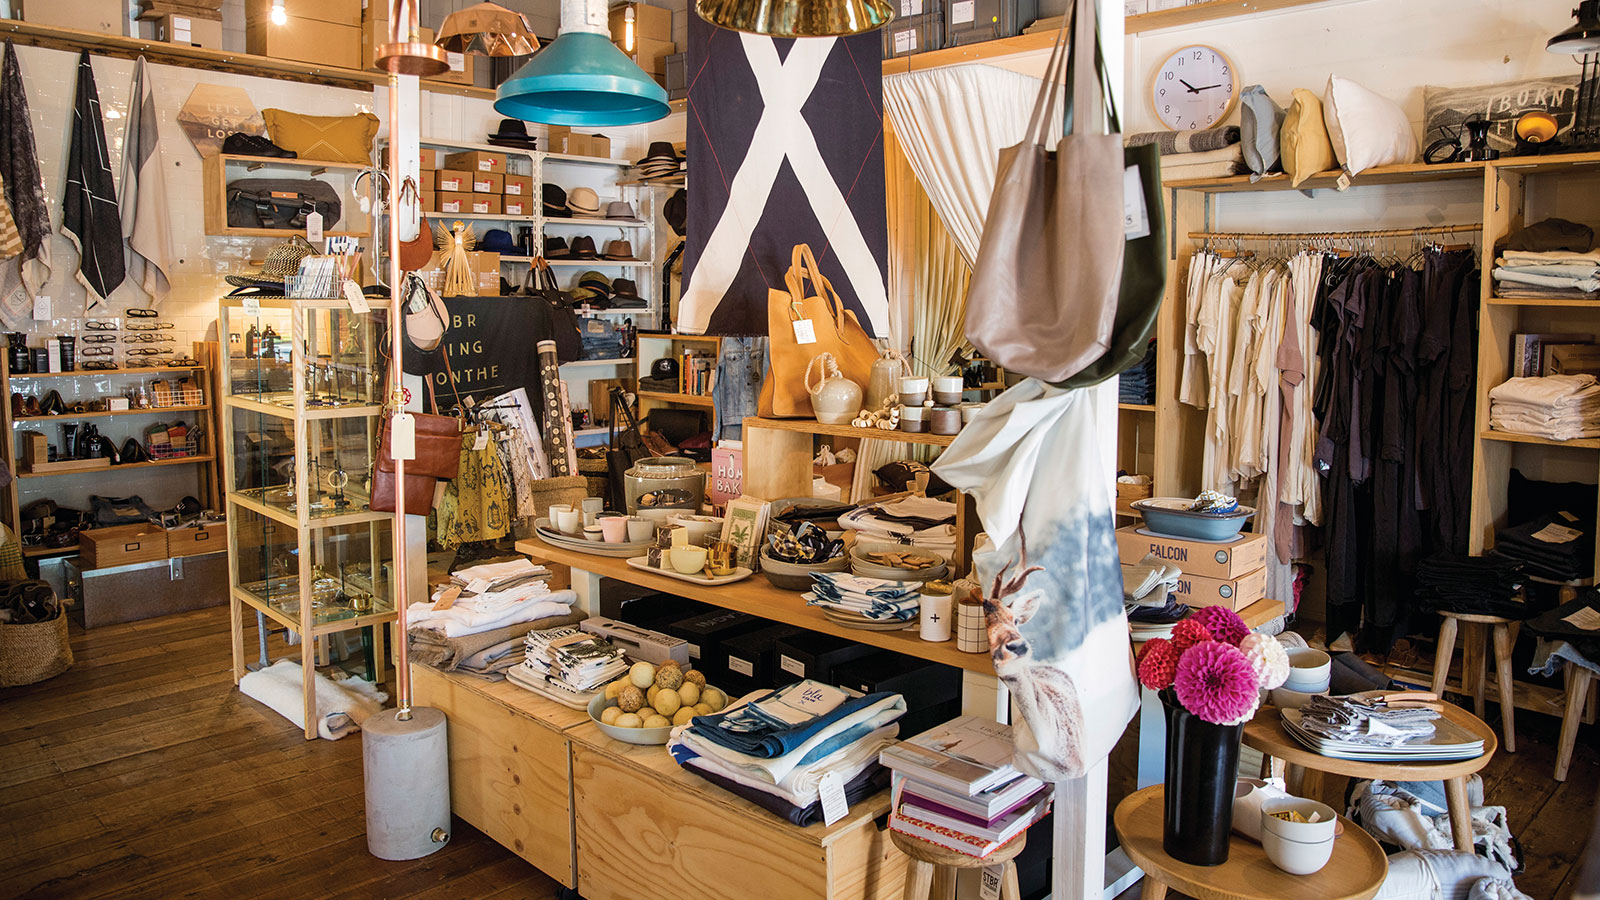 Byron Bay Shopping - Image Credit: Destination NSW